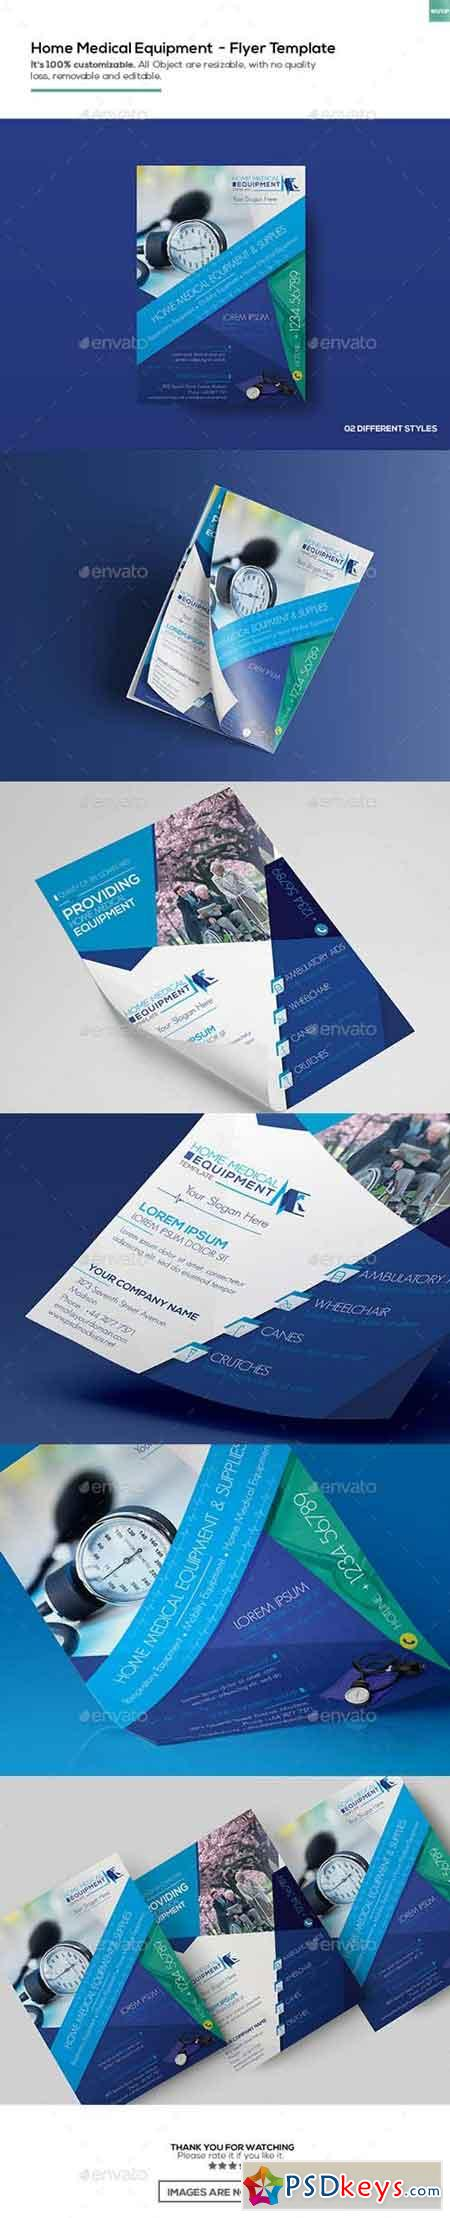 Home Medical Equipment Flyer Template 16895879